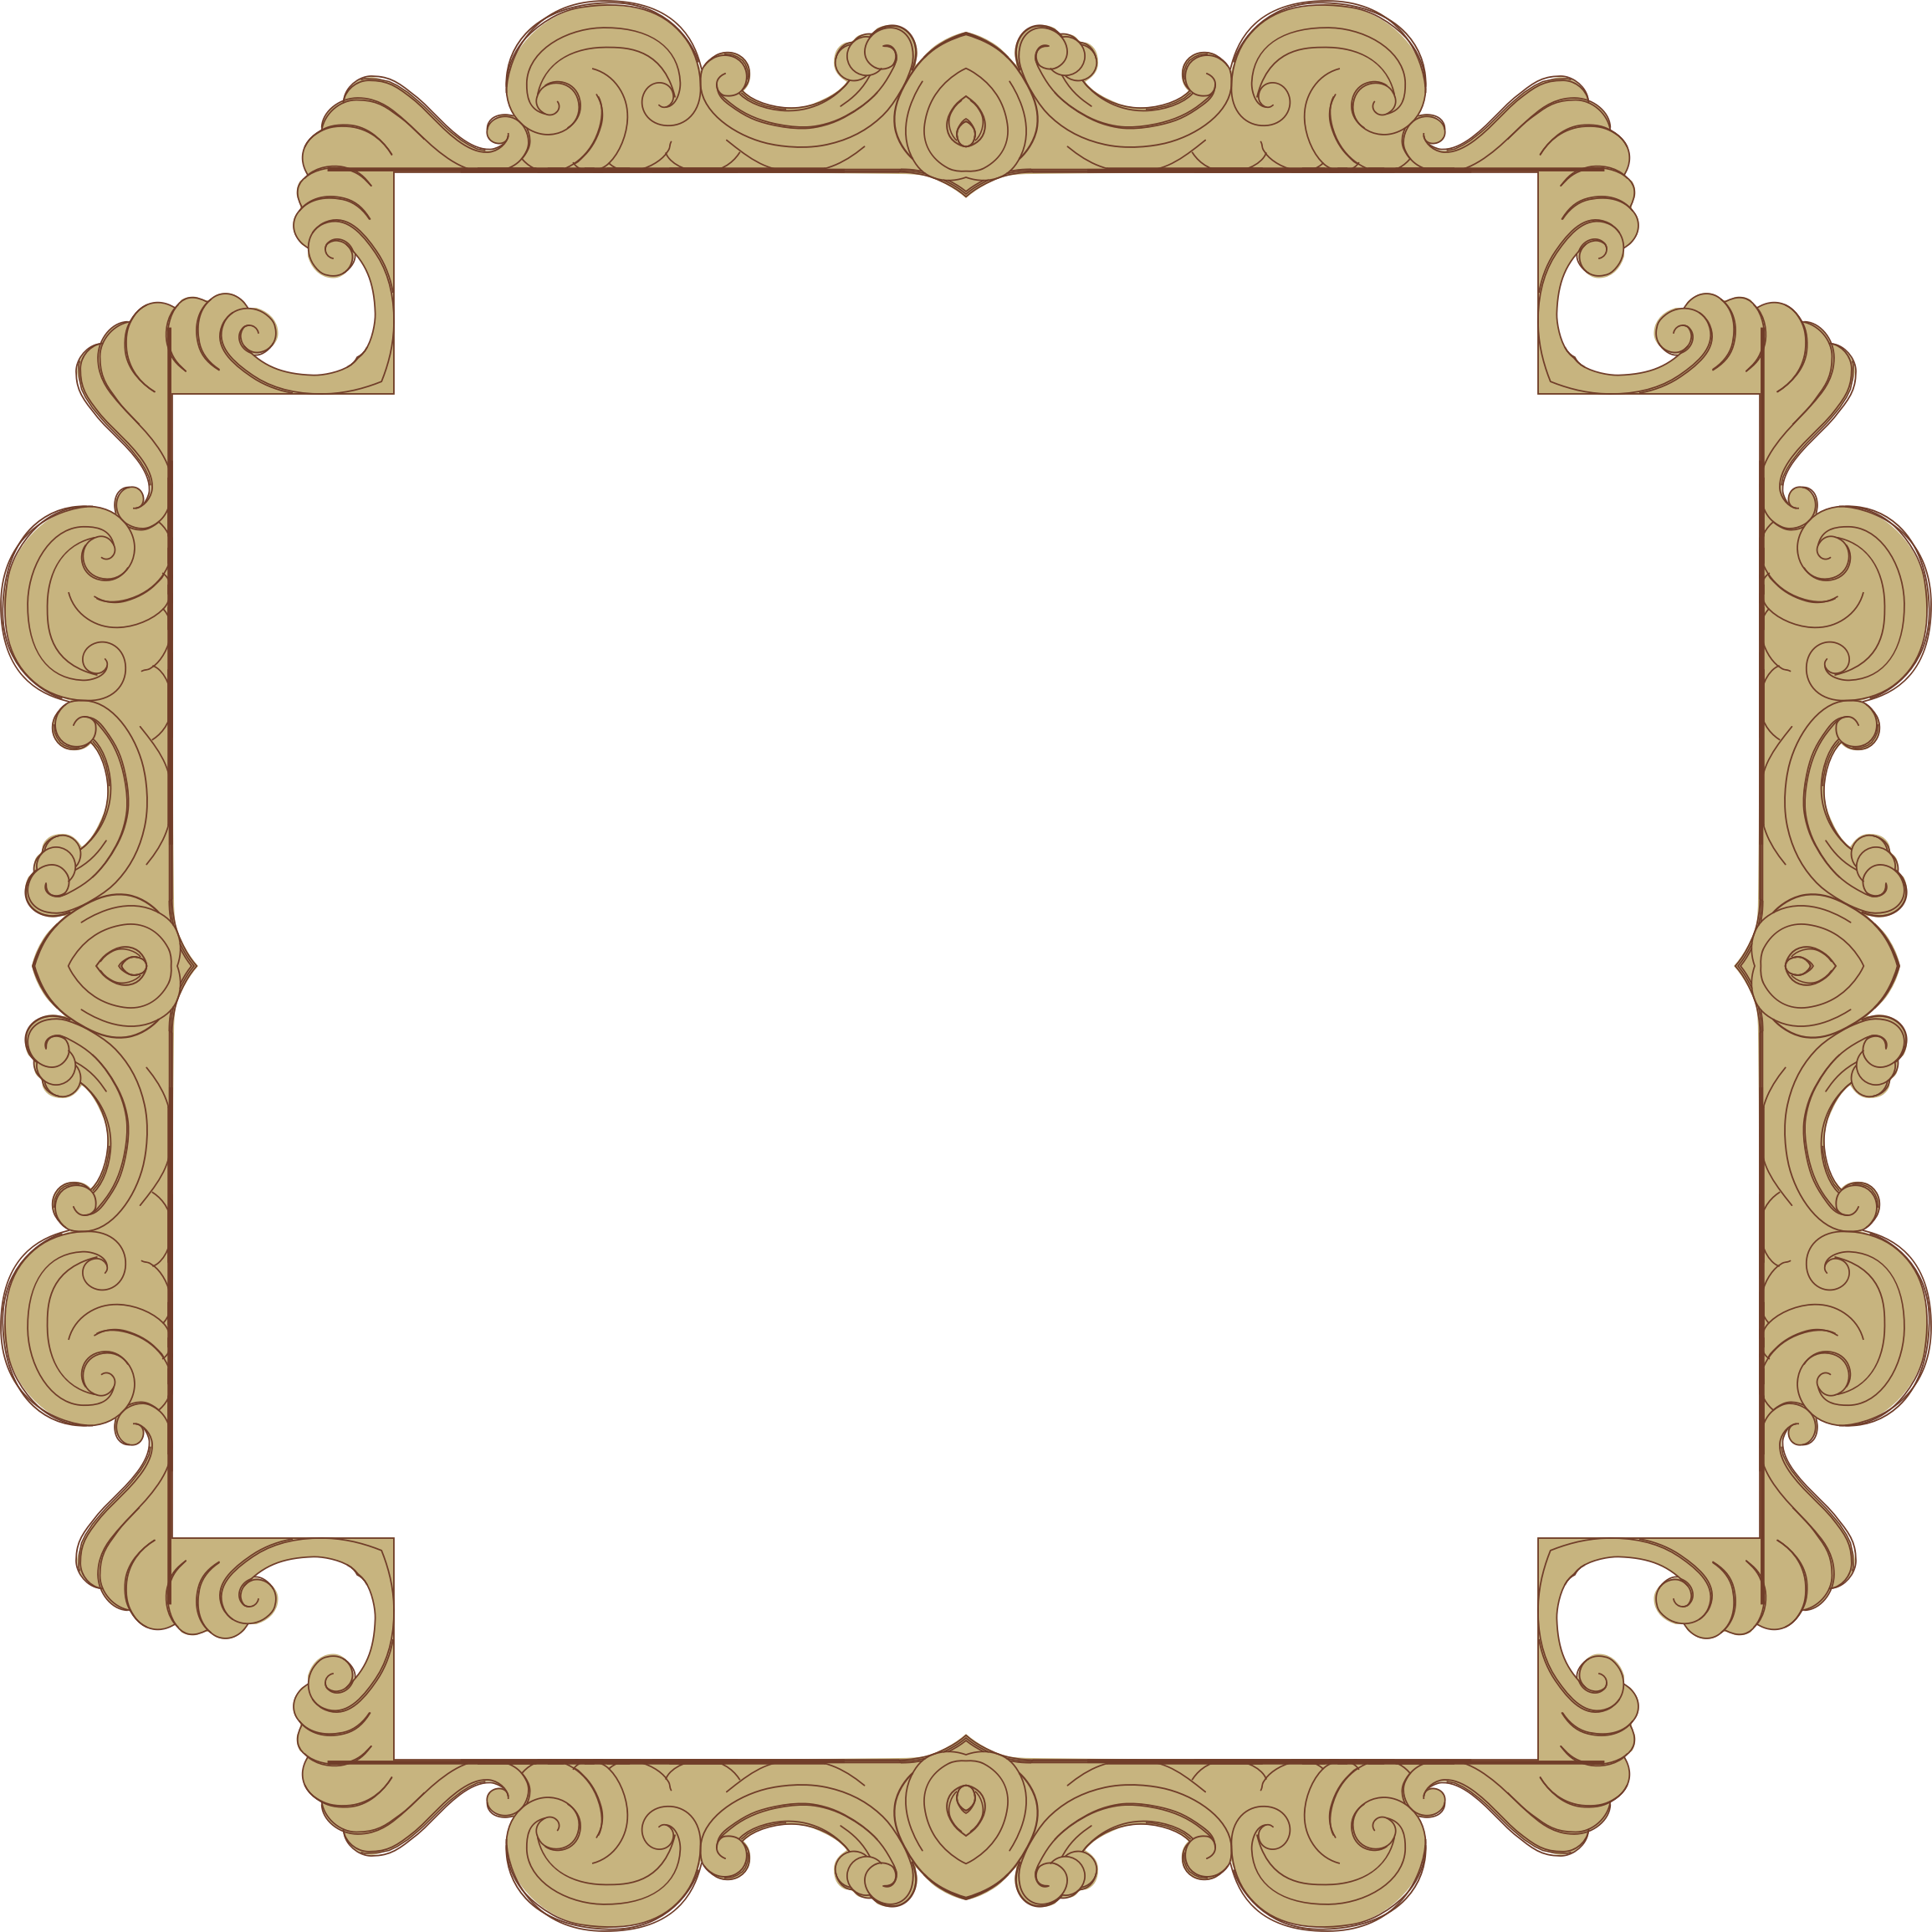 Ornate Frame 24 Derived 11 by GDJ